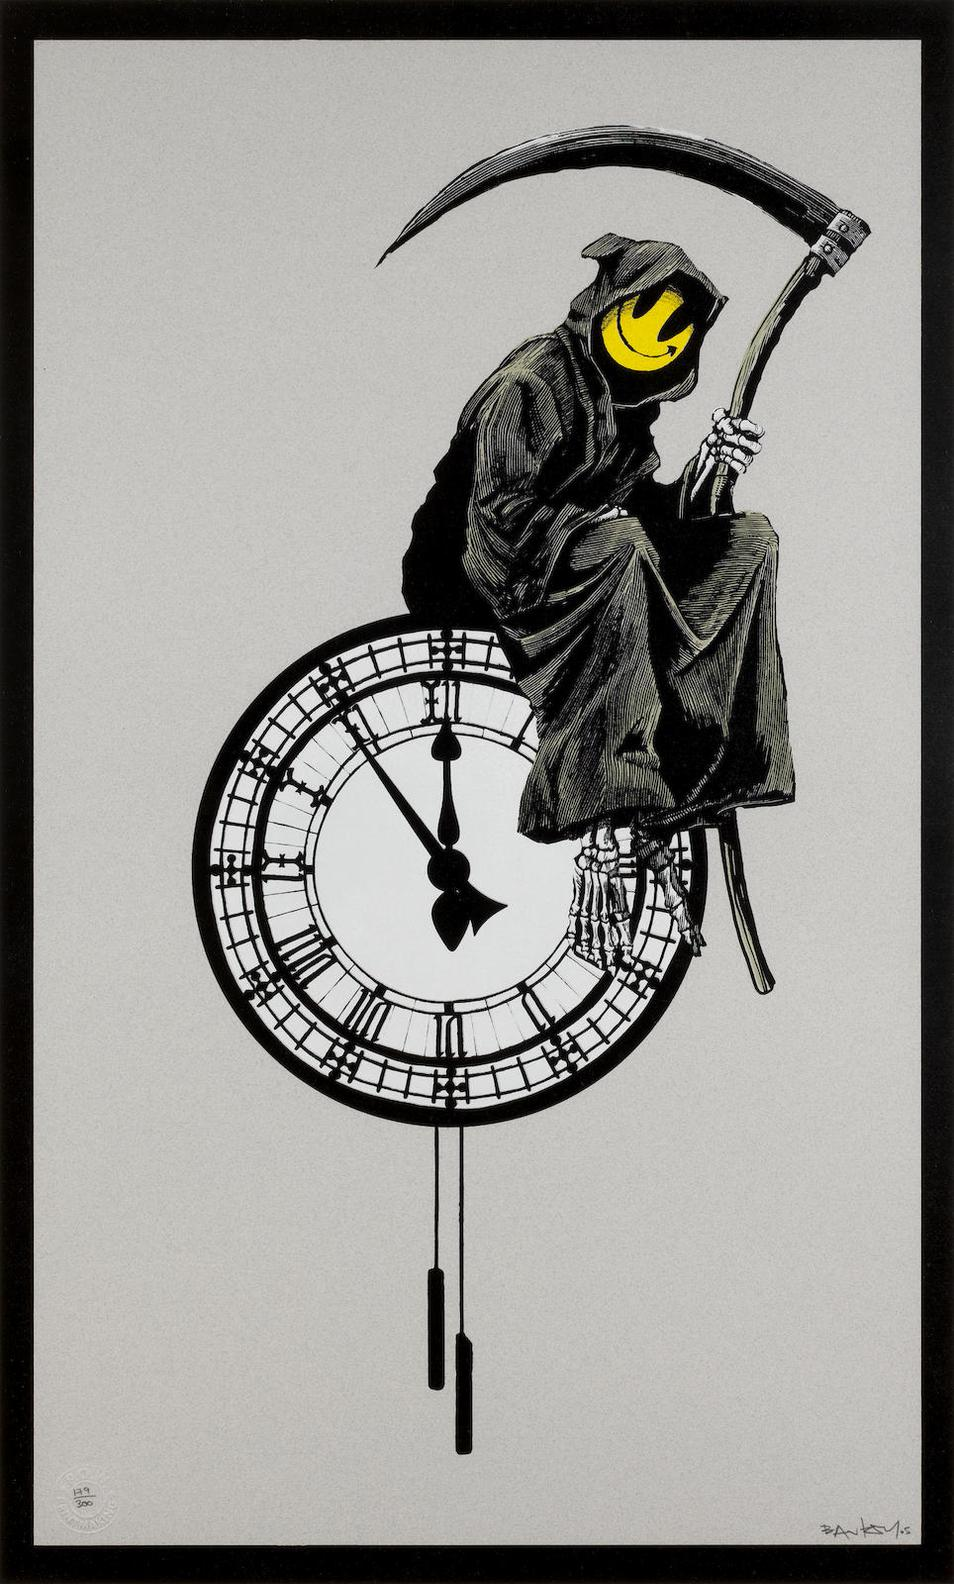 Banksy-Grin The Reaper-2005